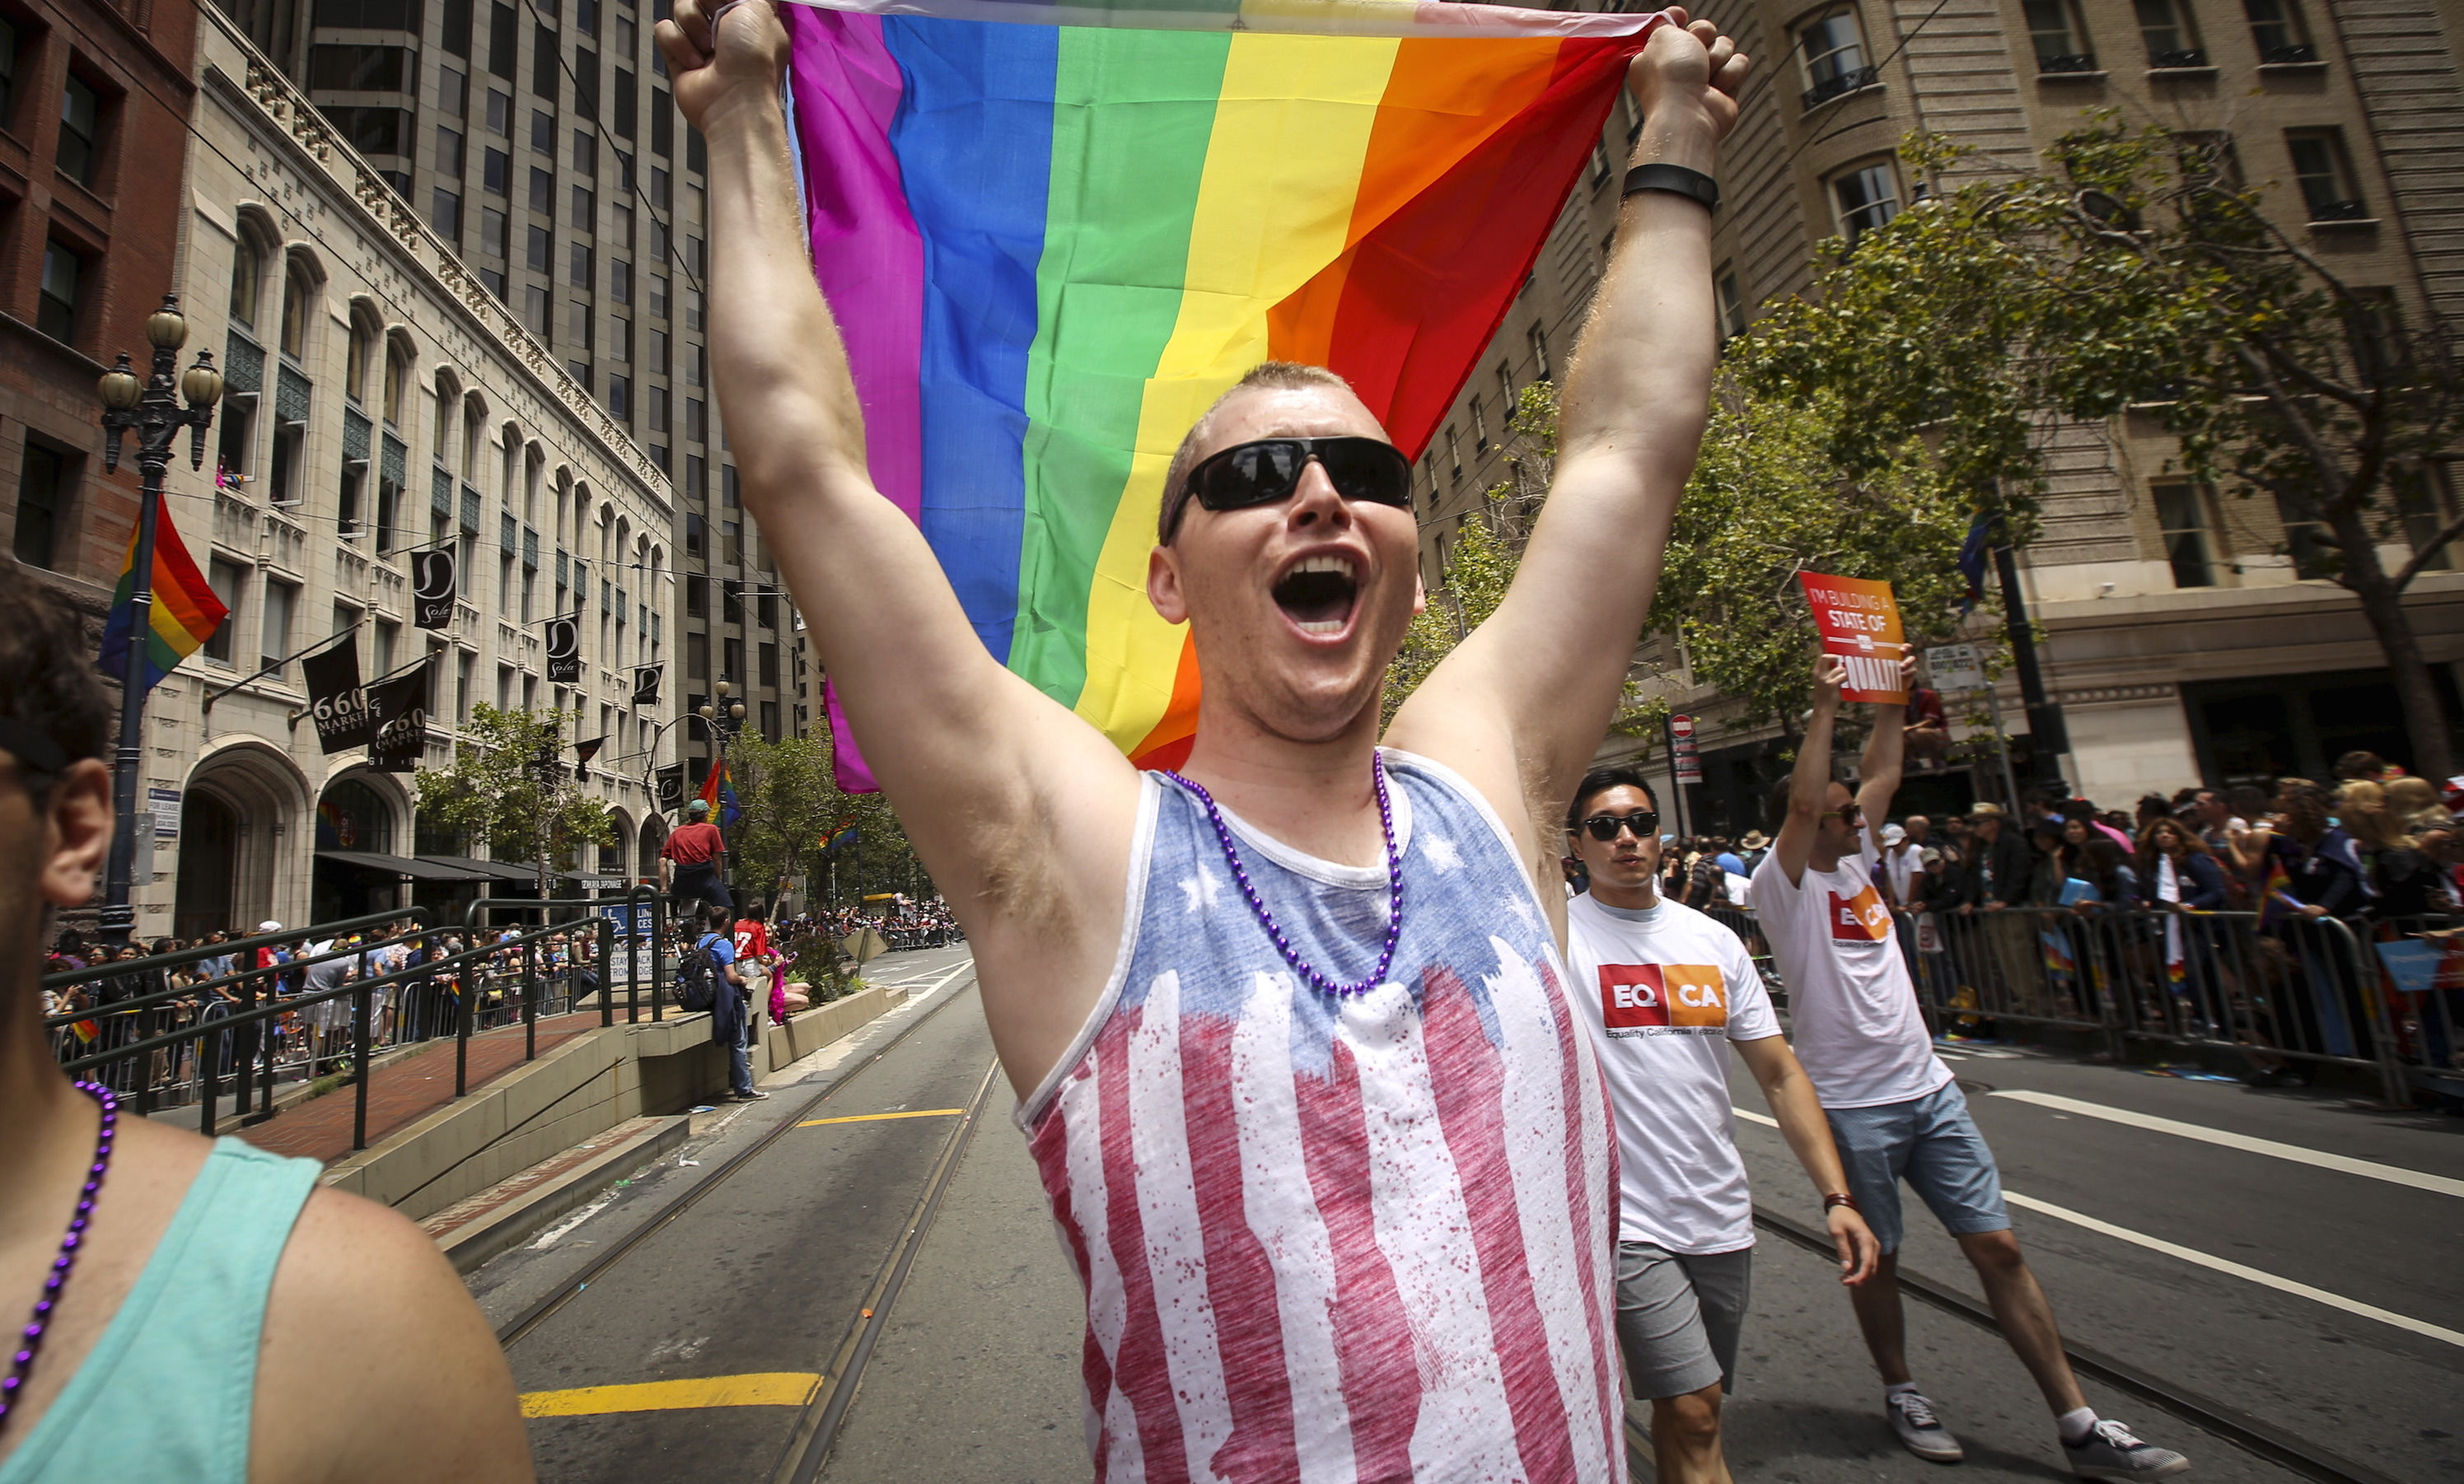 A man waves a rainbow flag while marching in the San Francisco gay pride parade two days after the U.S.  Supreme Court's landmark decision that legalized same-sex marriage throughout the country in San Francisco, California June 28, 2015.  REUTERS/Elijah Nouvelage - RTX1I6KA